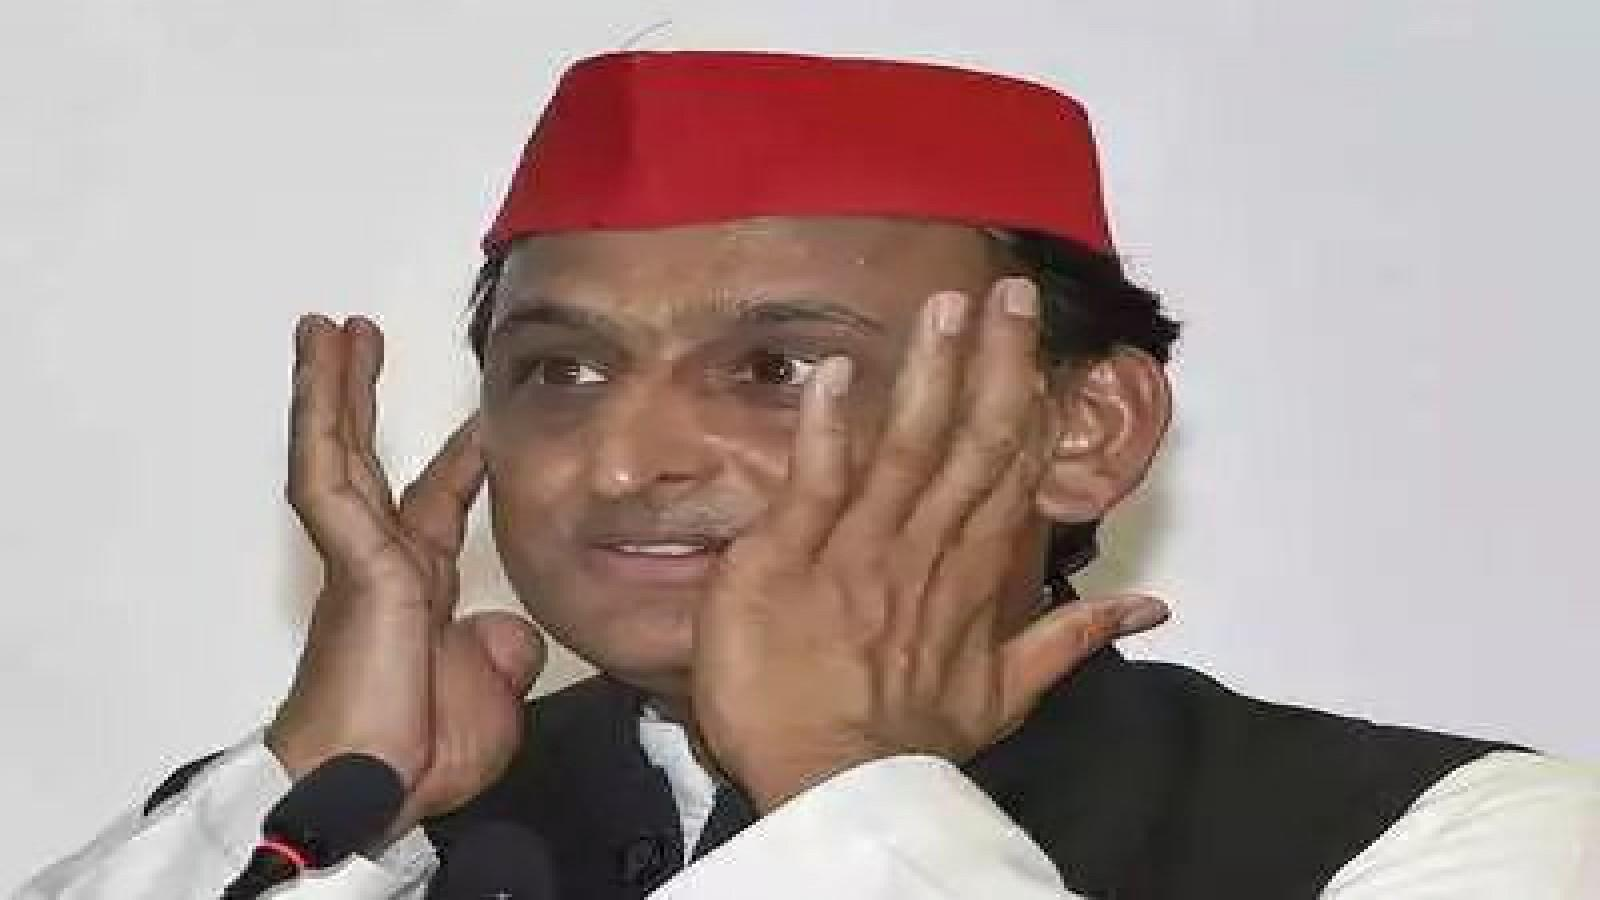 shocking-move-by-akhilesh-yadav-after-loss-spokespersons-face-axe